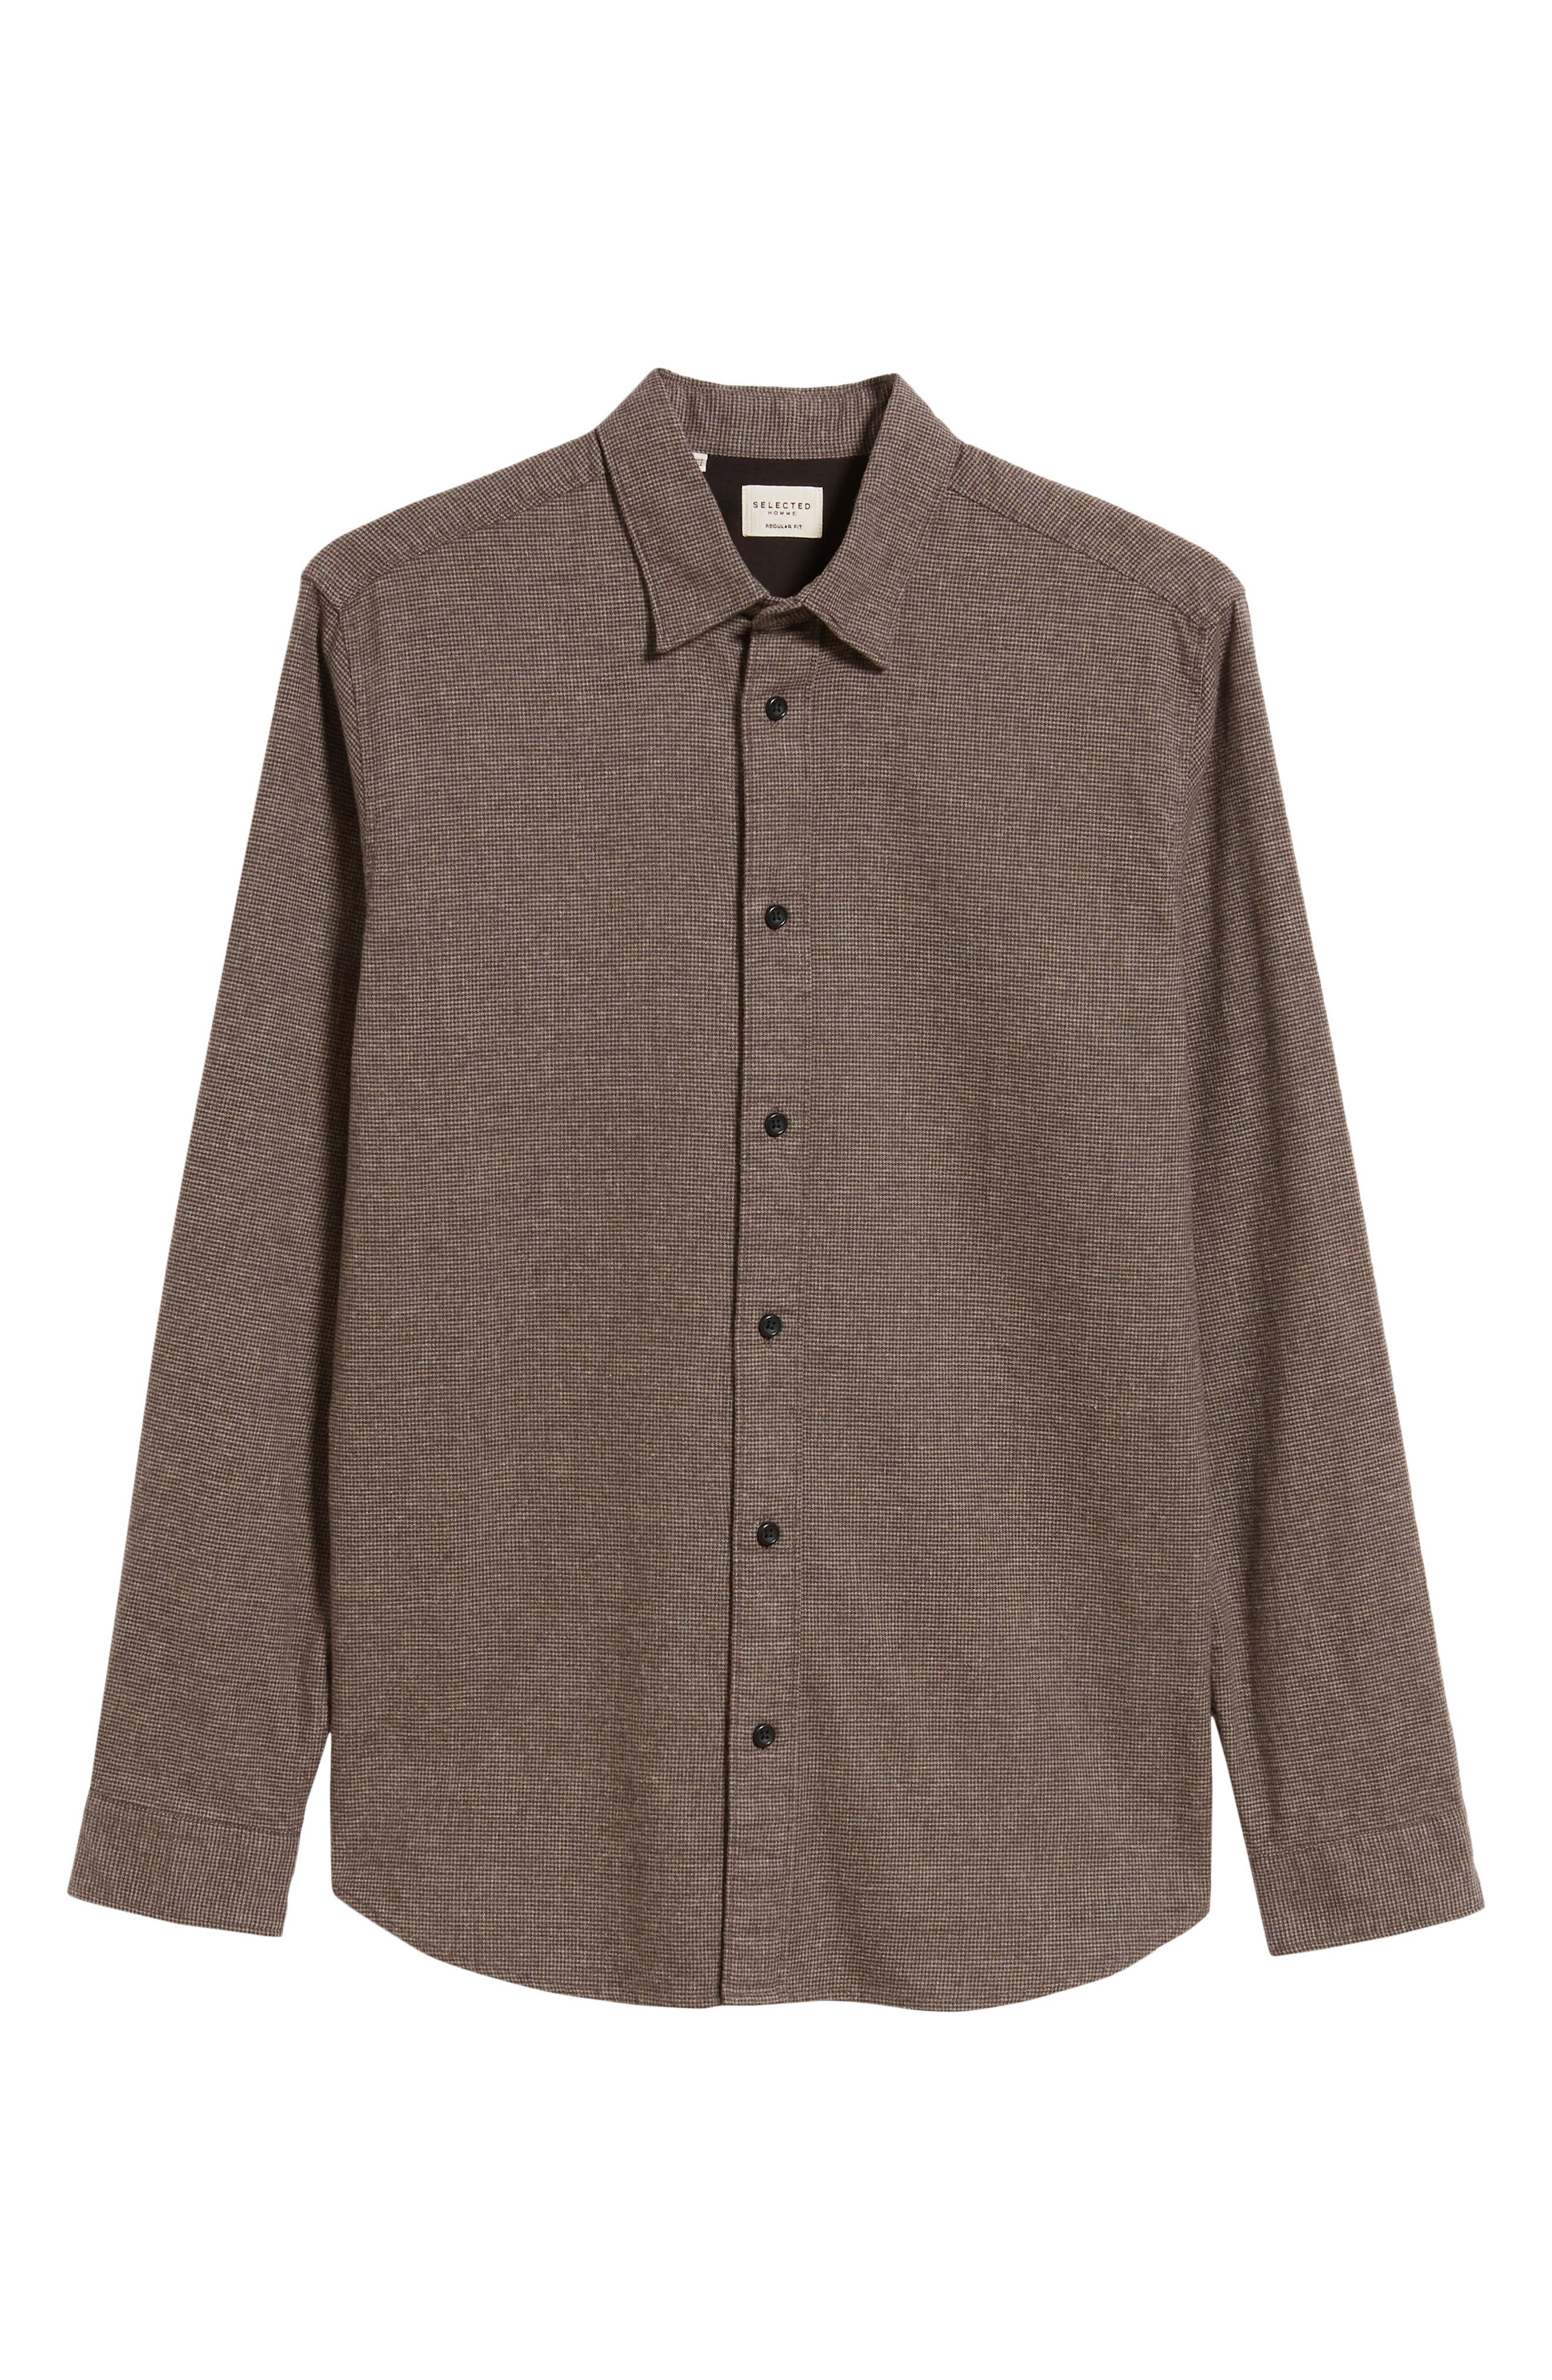 Lucas Houndstooth Check Sport Shirt,                             Alternate thumbnail 5, color,                             HOUNDSTOOTH